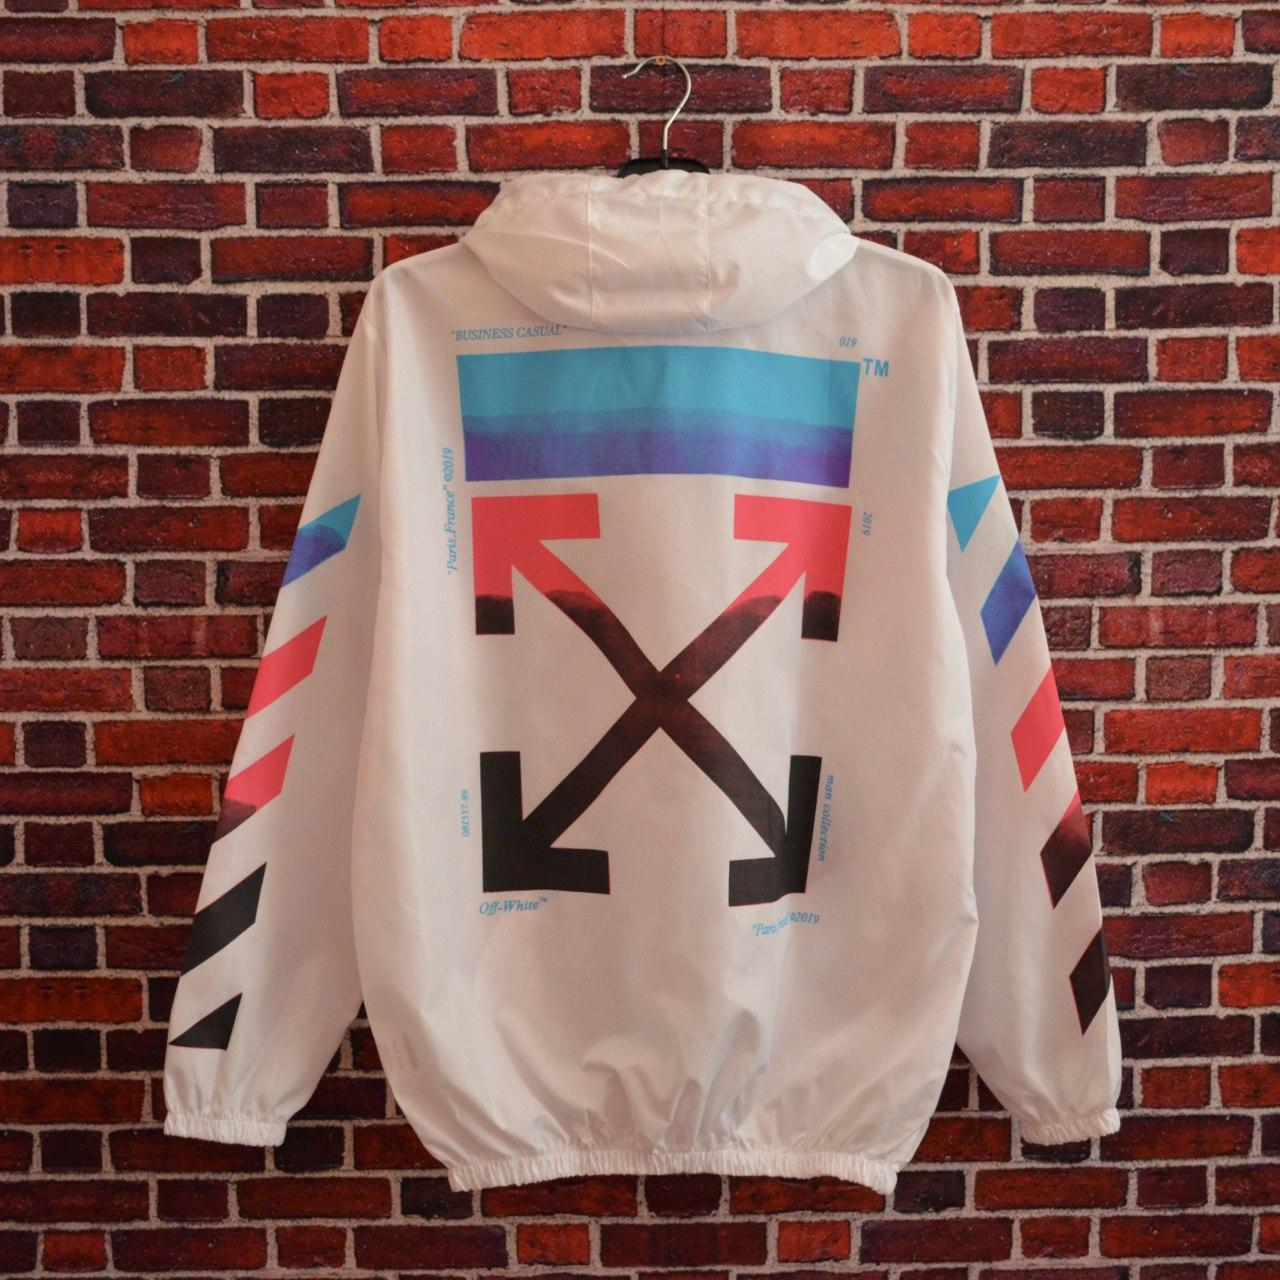 Ветровка Off-White business casual White